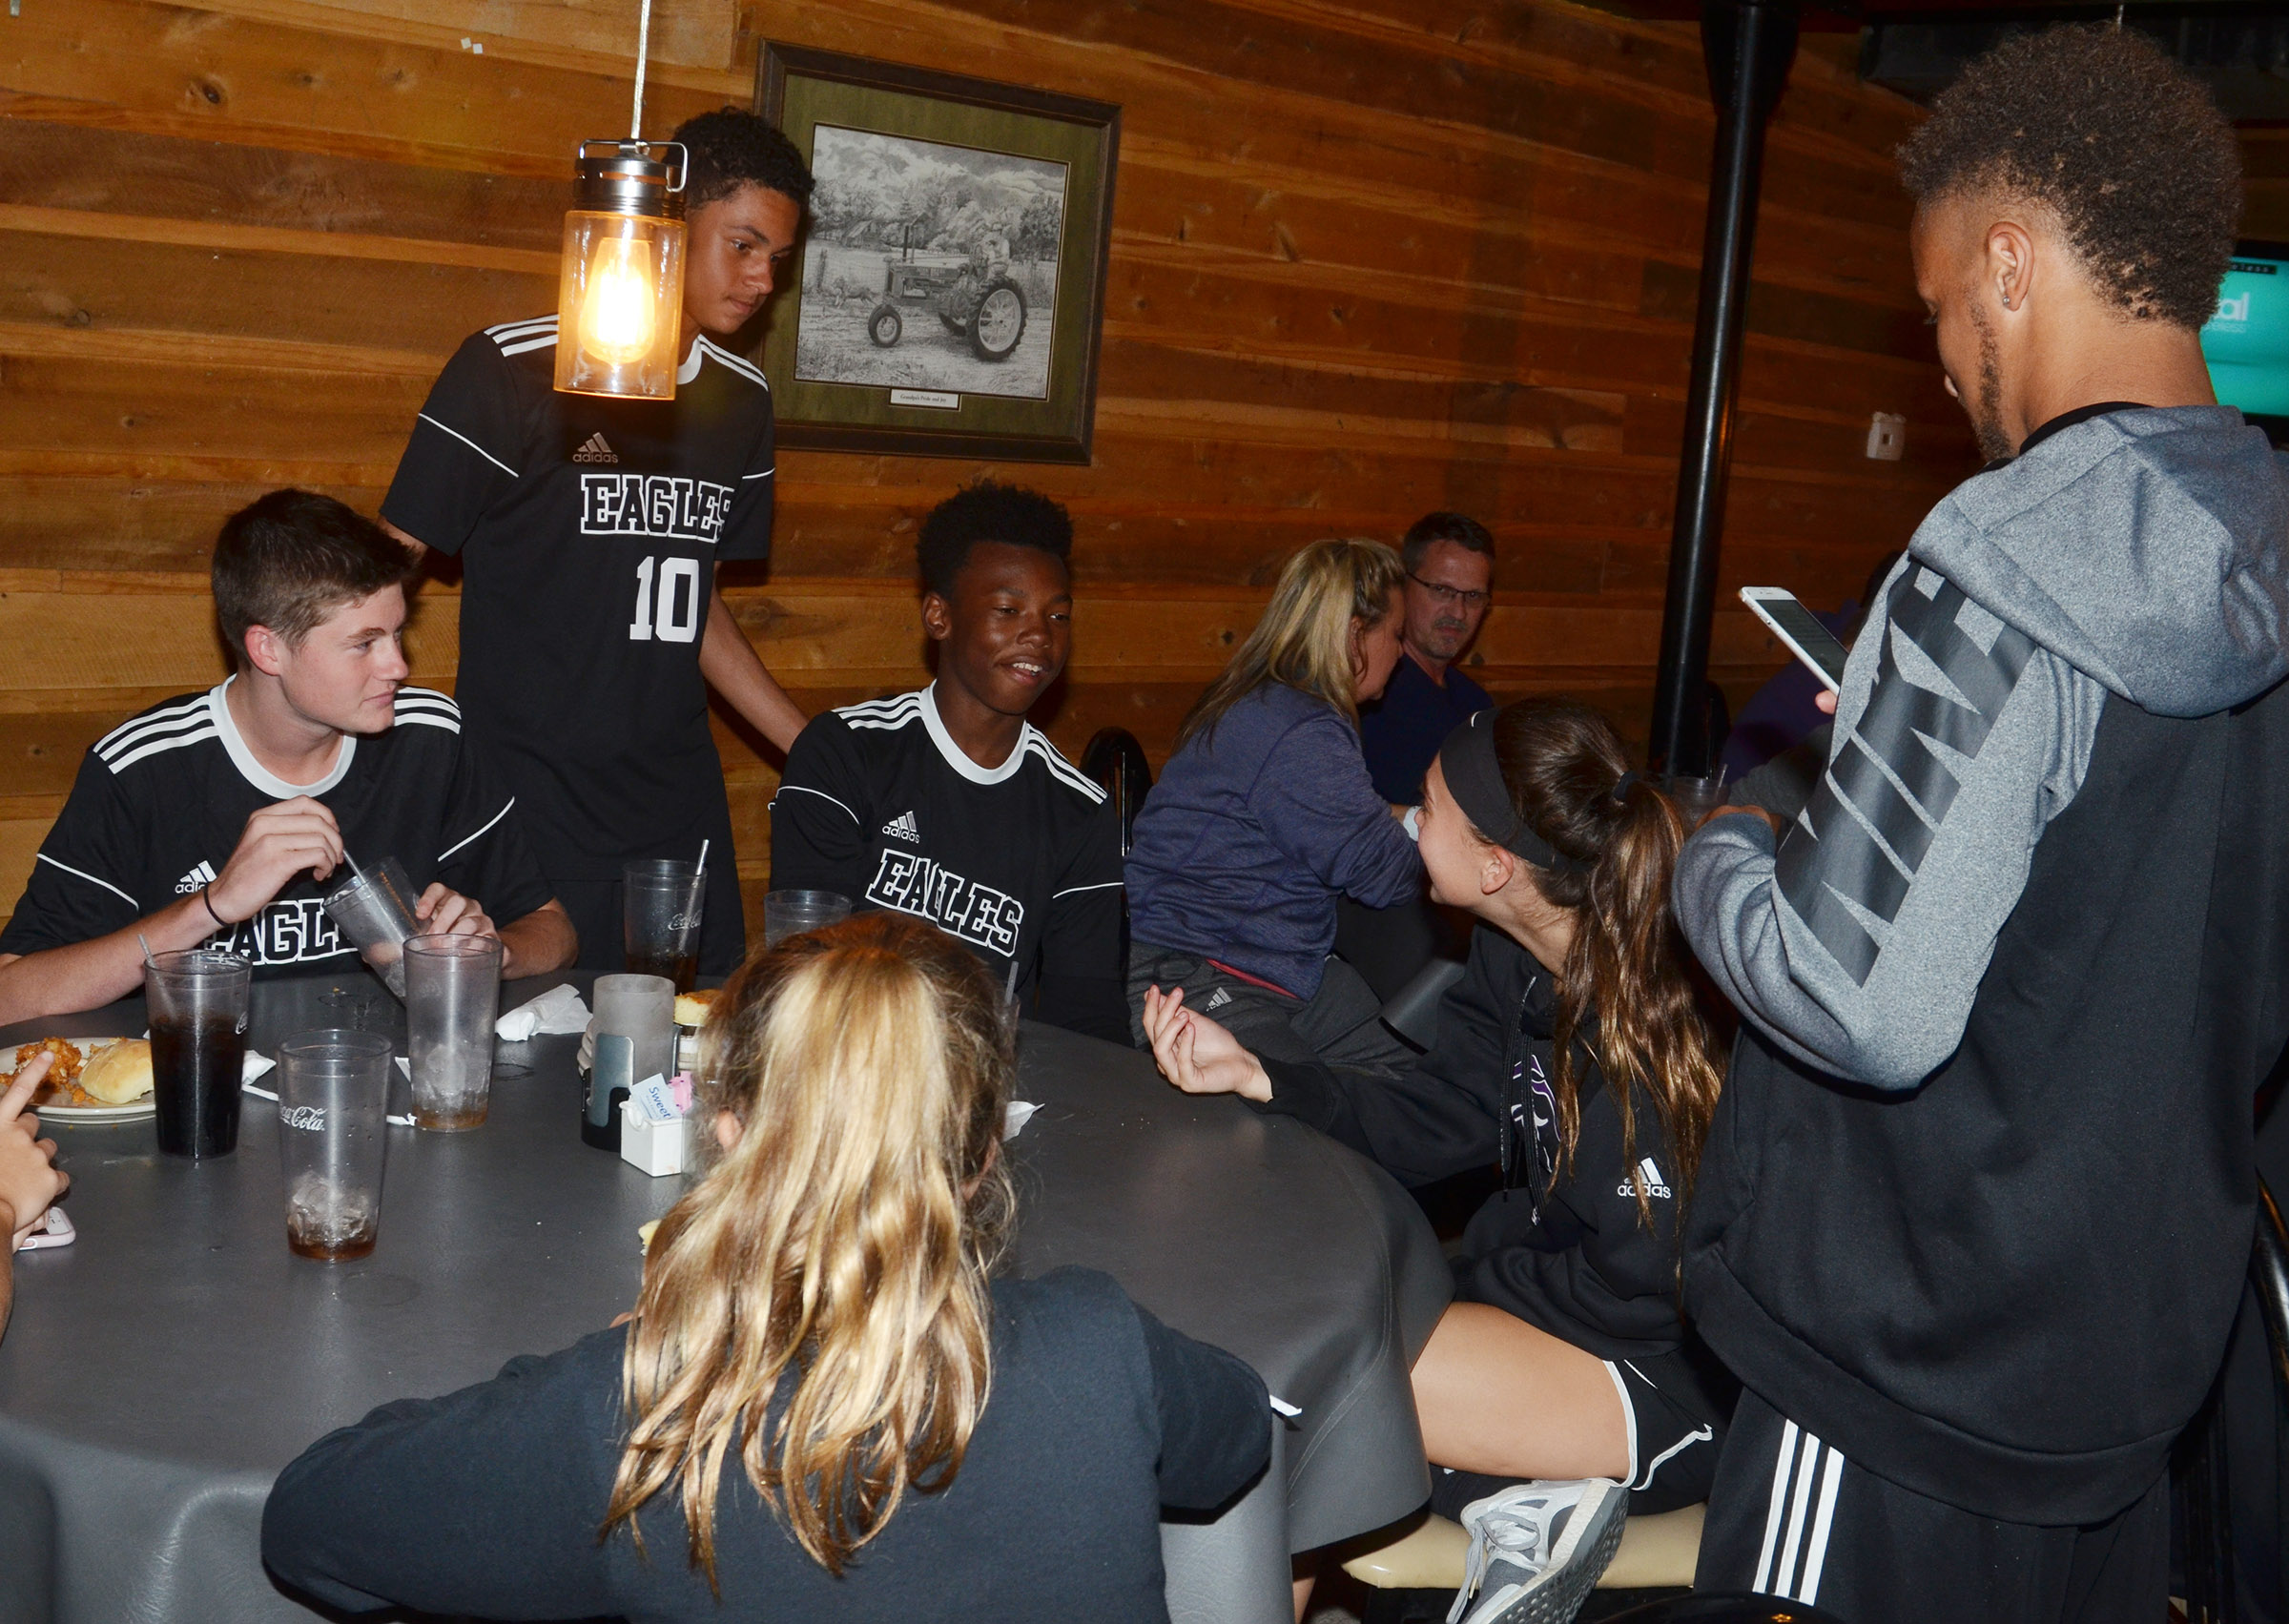 CHS soccer players and family members celebrate at Creek Side Restaurant.